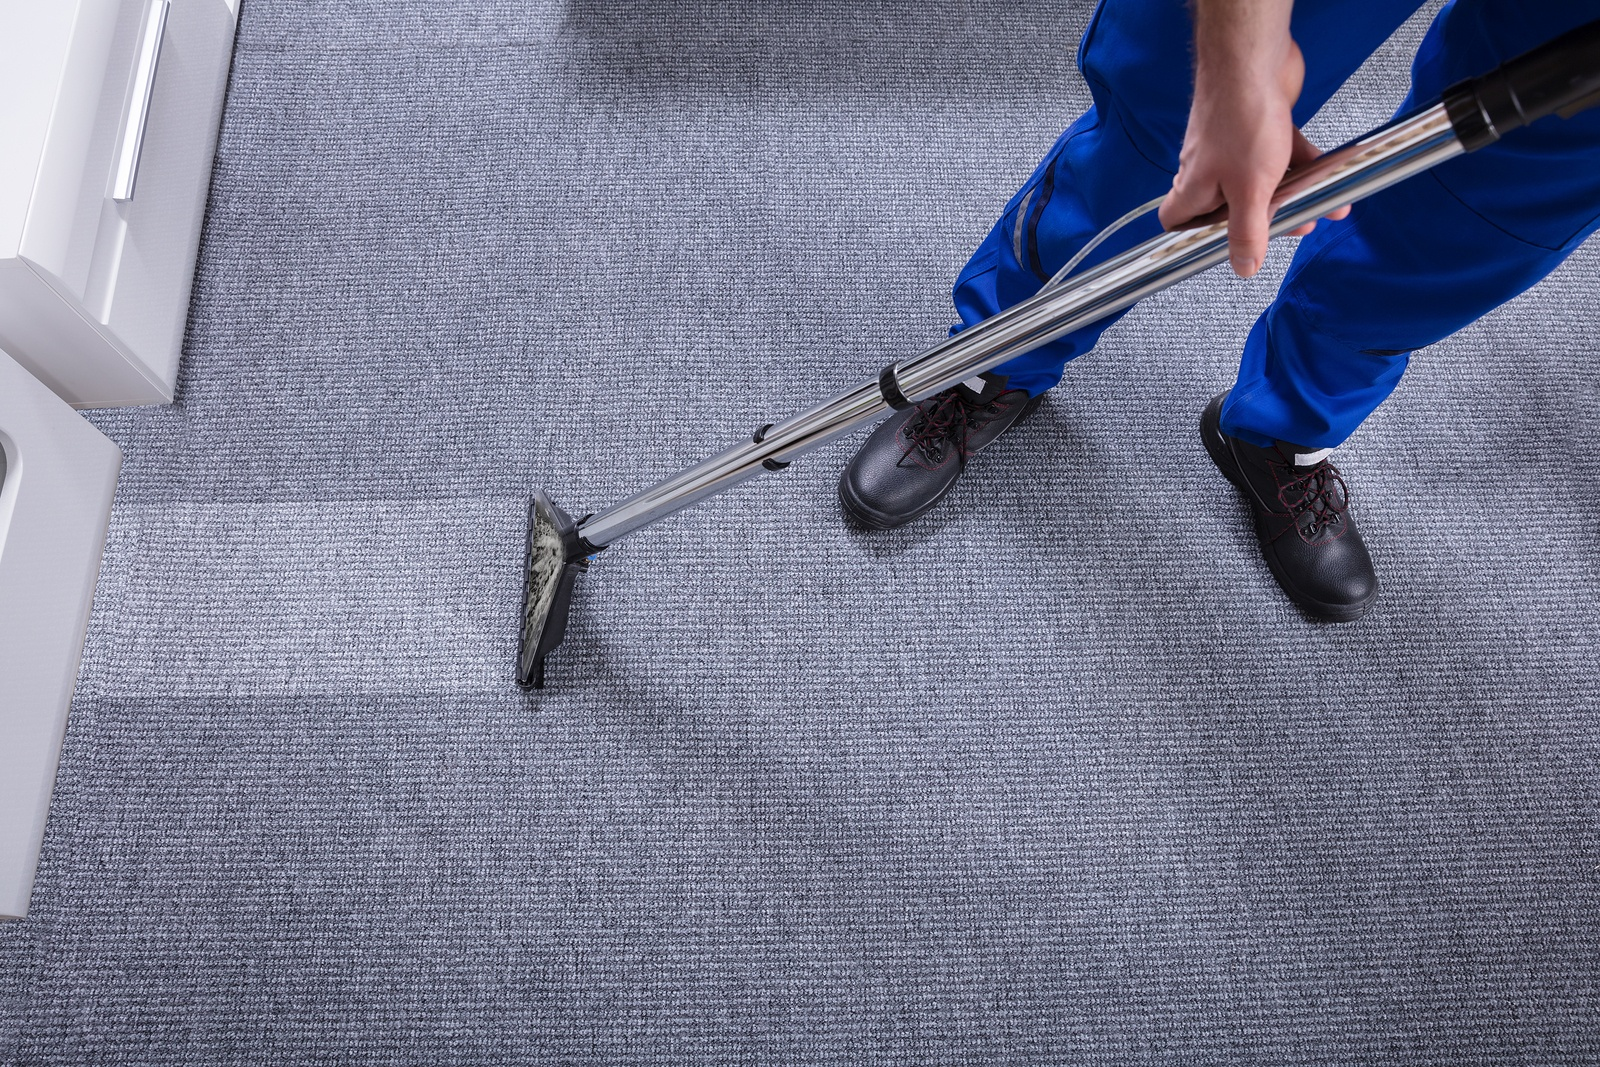 Commercial Carpet Cleaning Monmouth County